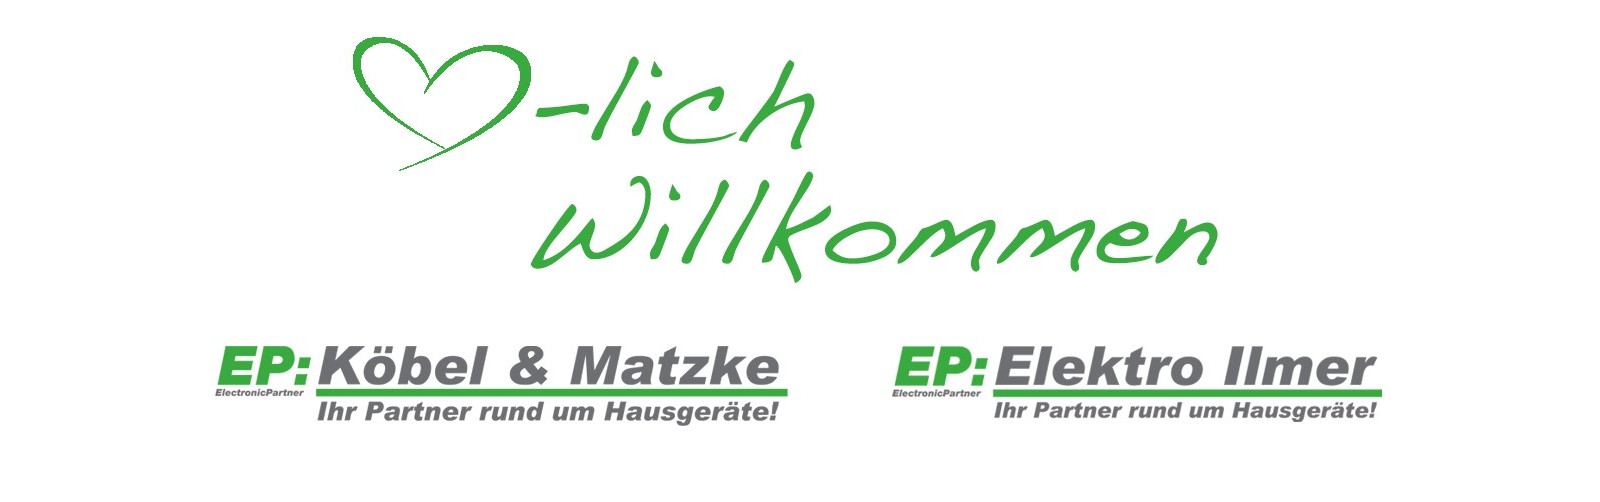 Ep Kobel Matzke In Salzgitter Electronicpartner